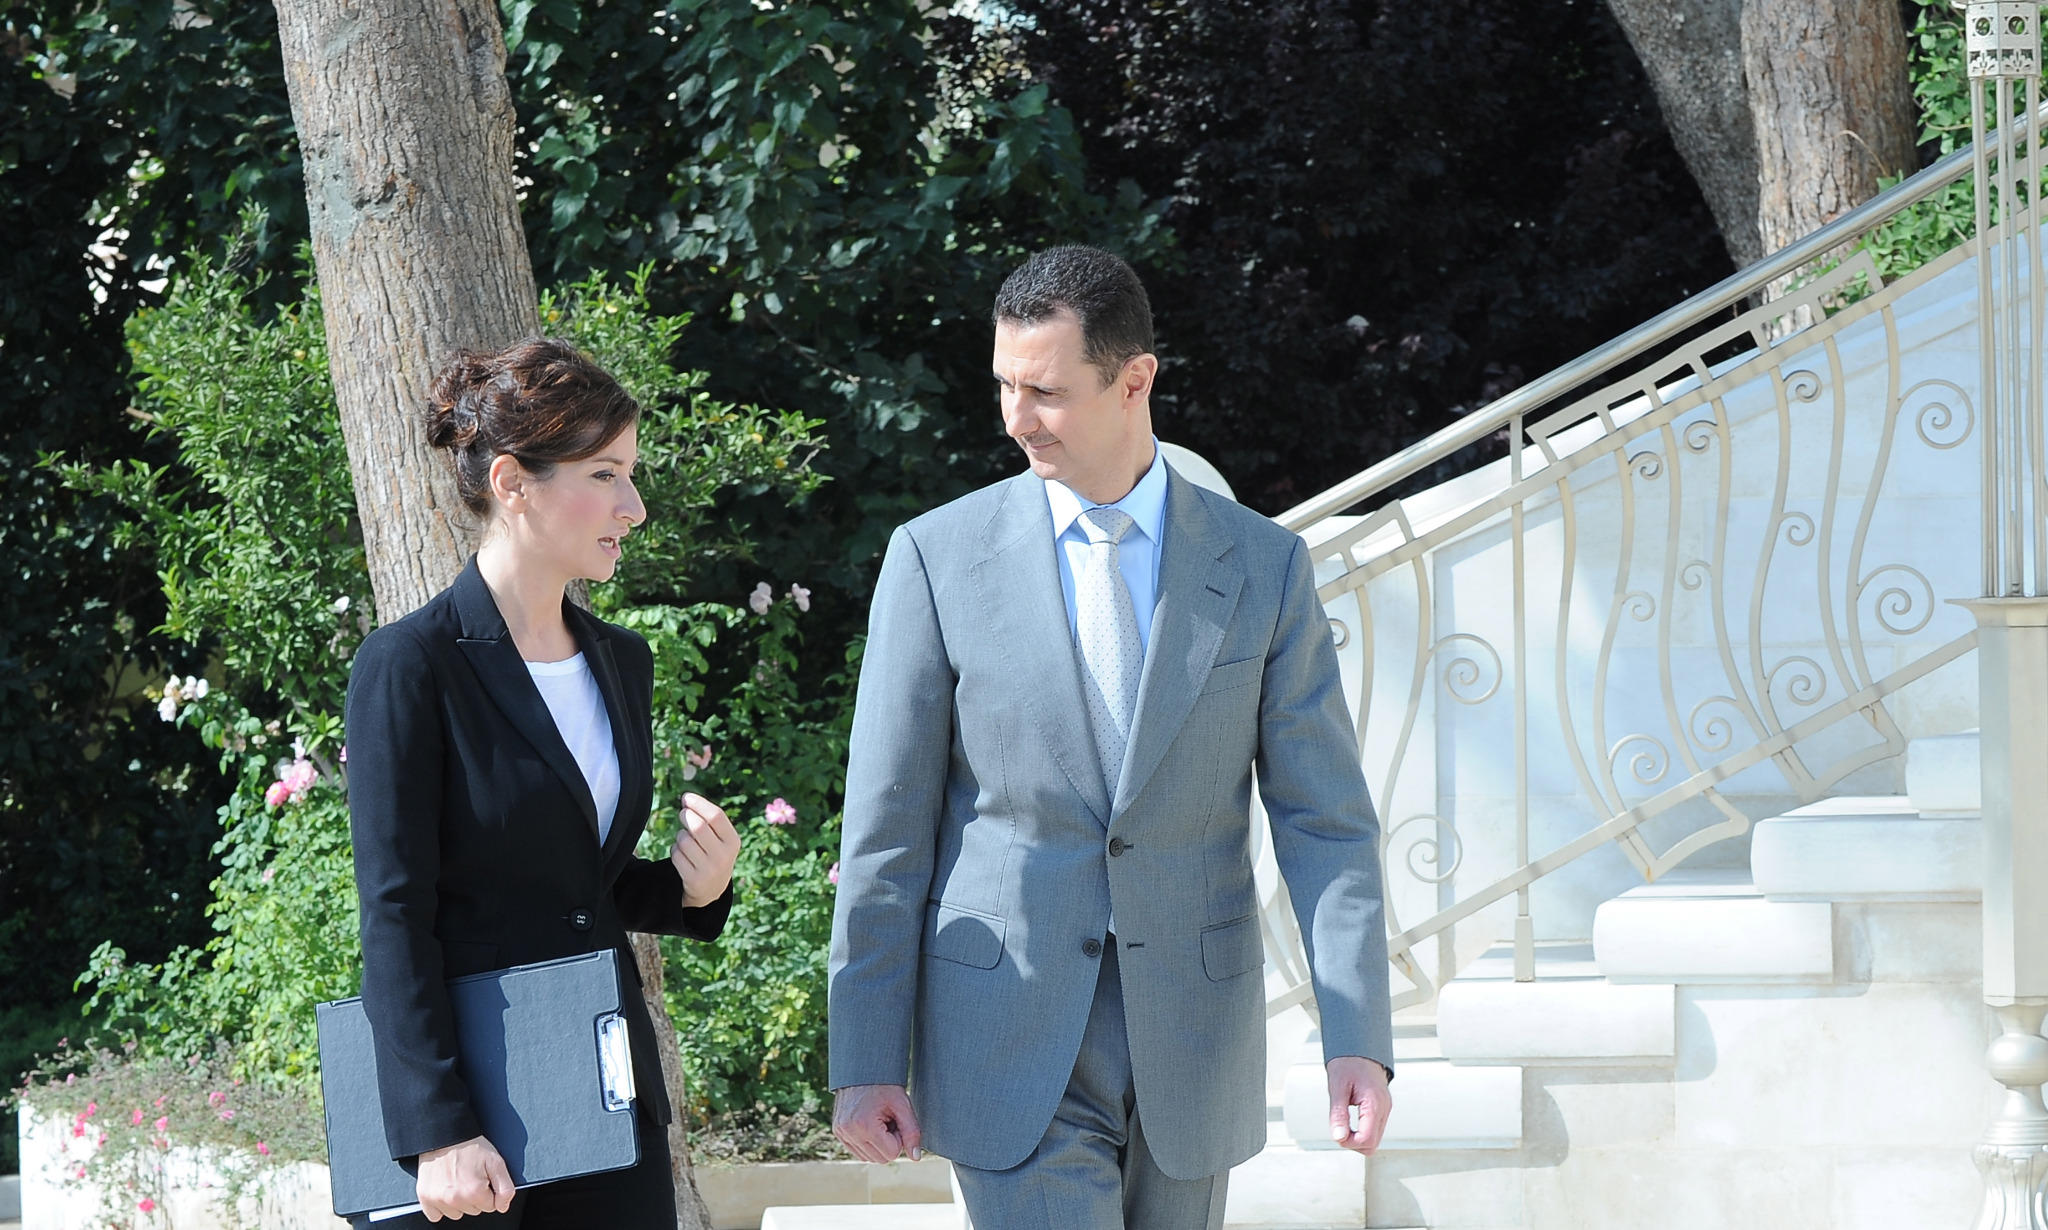 RT @RT_com: (PHOTO) RT host Sophie Shevardnadze taking exclusive interview with Syria's Bashar Al-Assad http://t.co/tkCyCgBa